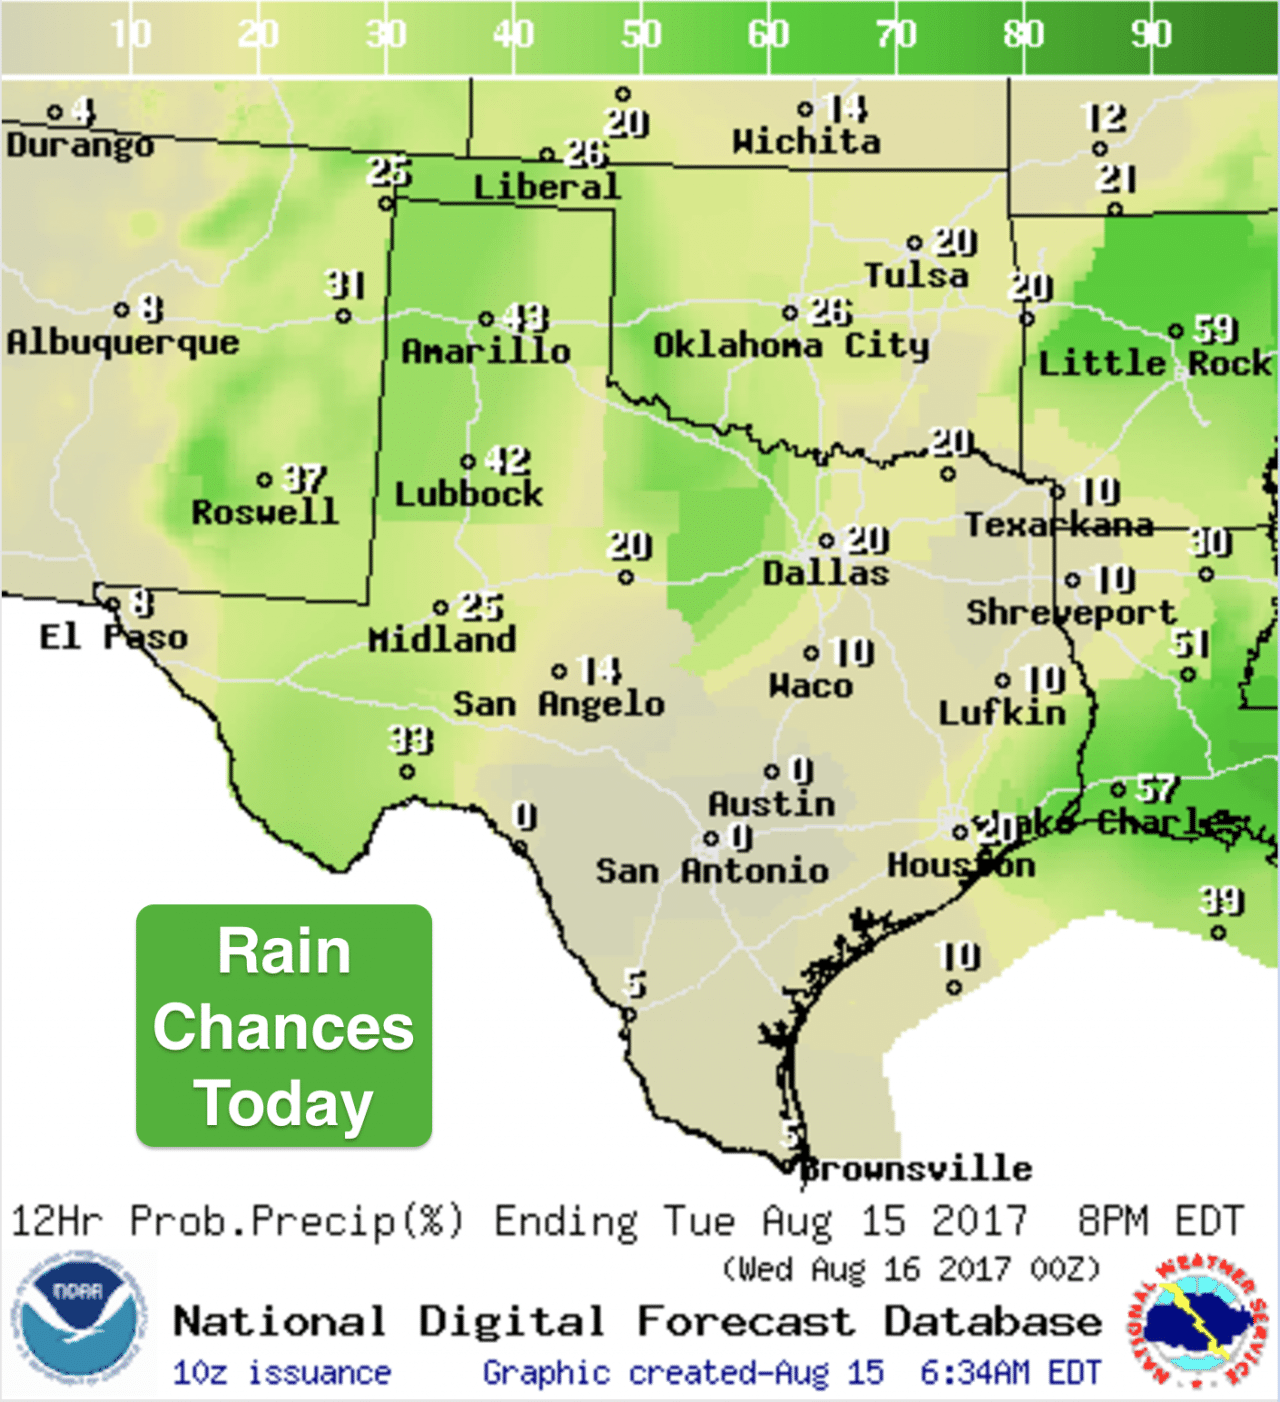 Tuesday August 15th Outlook - Continued Storm Chances for the Panhandle